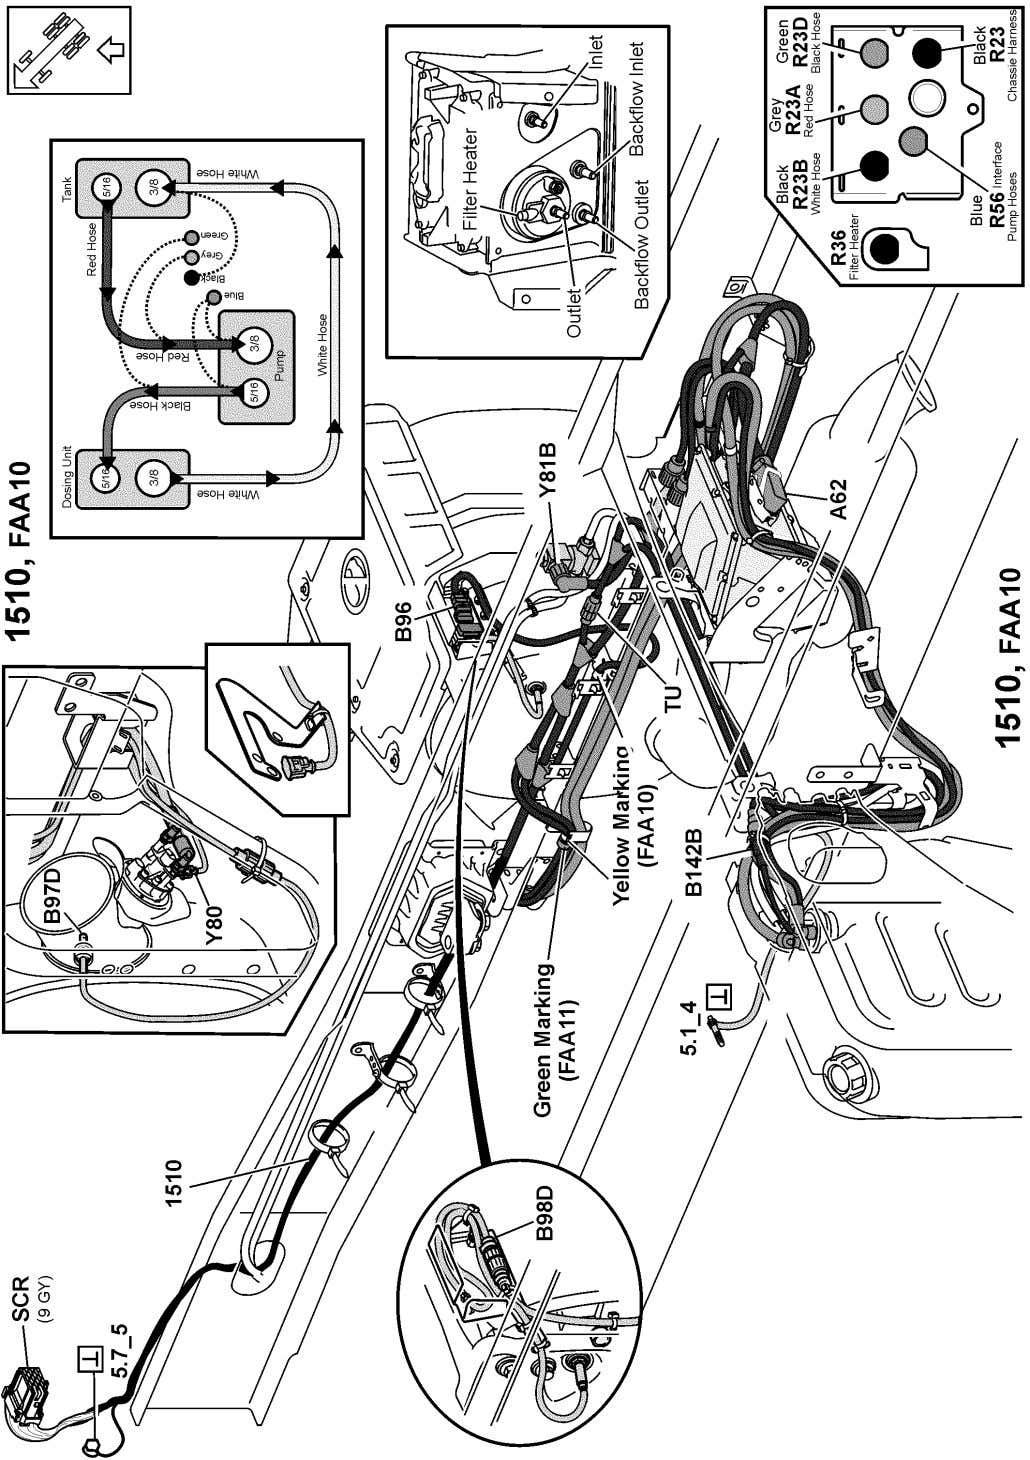 T3071635 Page 222 (298) Wiring diagram